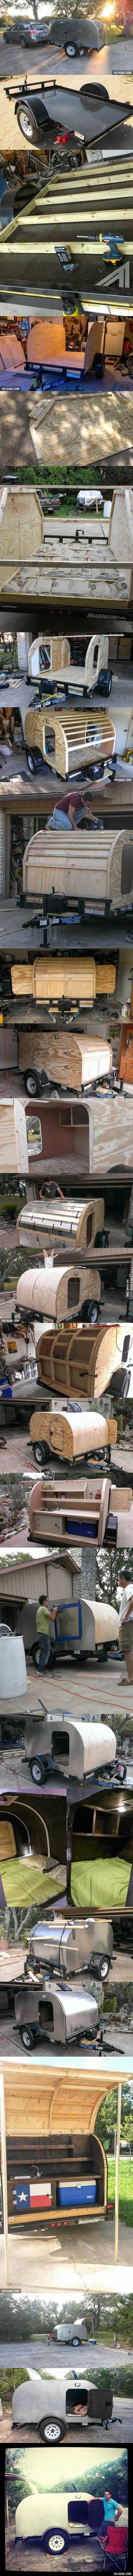 Oct162016Sun-I decided build a tiny camping trailer. I had no experience but I gave it my best shot.()